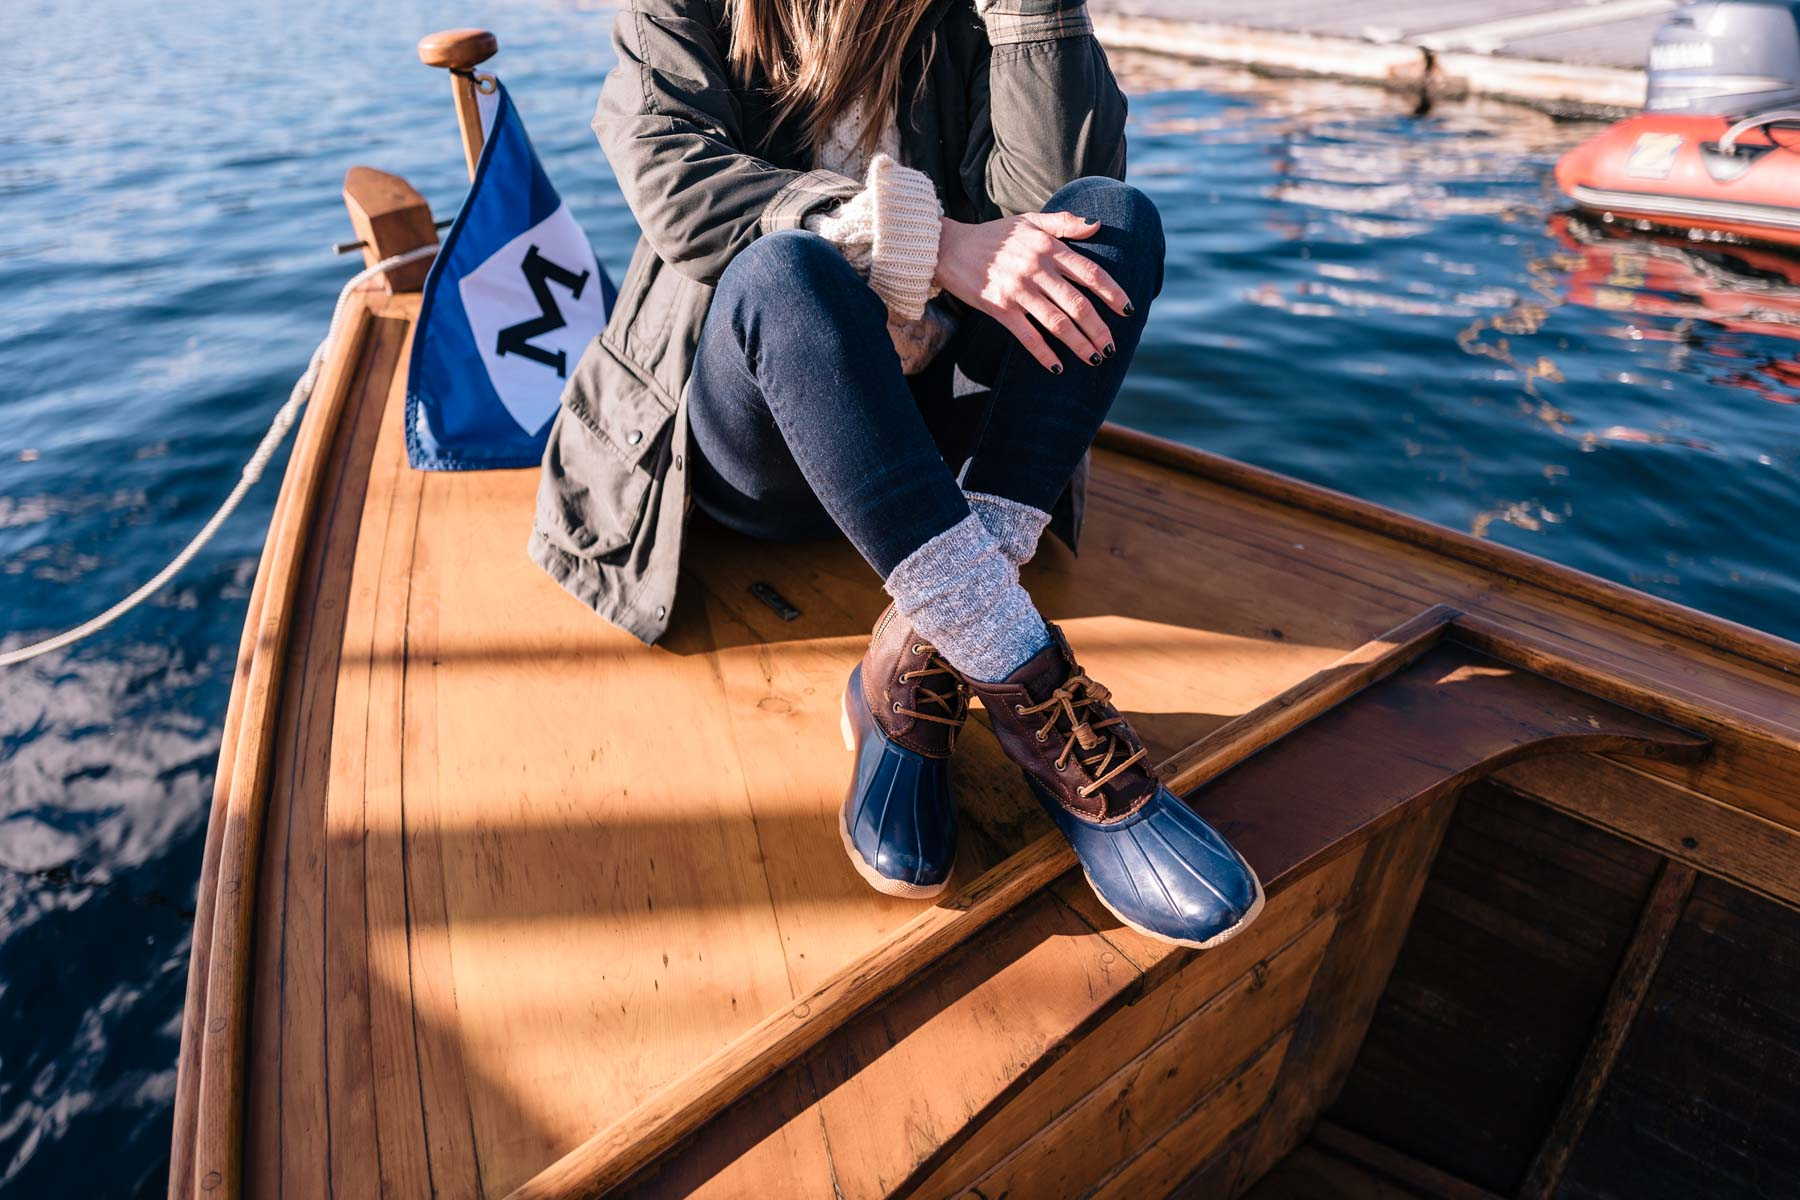 Sperry duck boots are the perfect boot for fall and winter by the water